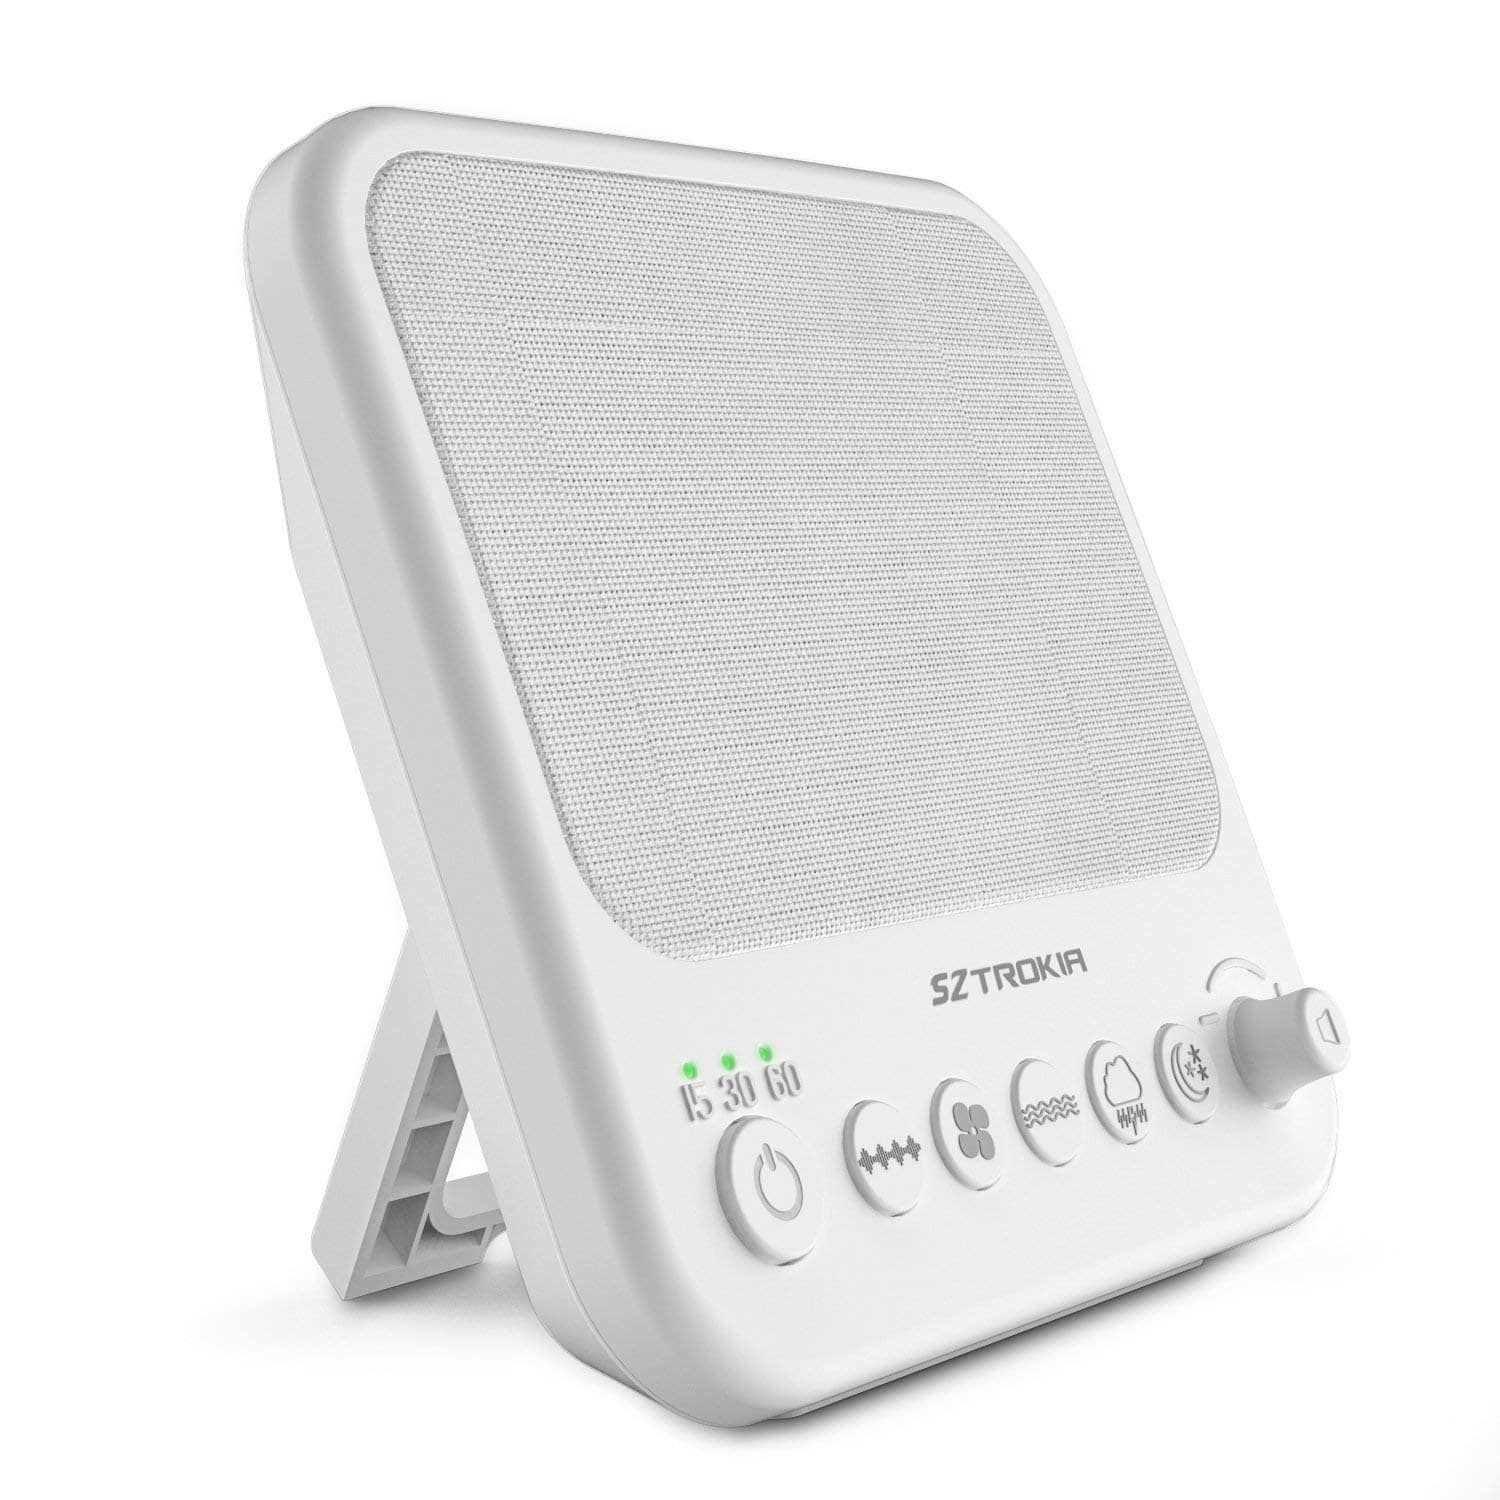 SZTROKIA White Noise Machine,Sound Sleep Therapy for Home,Office,Baby - Amazon $18.74